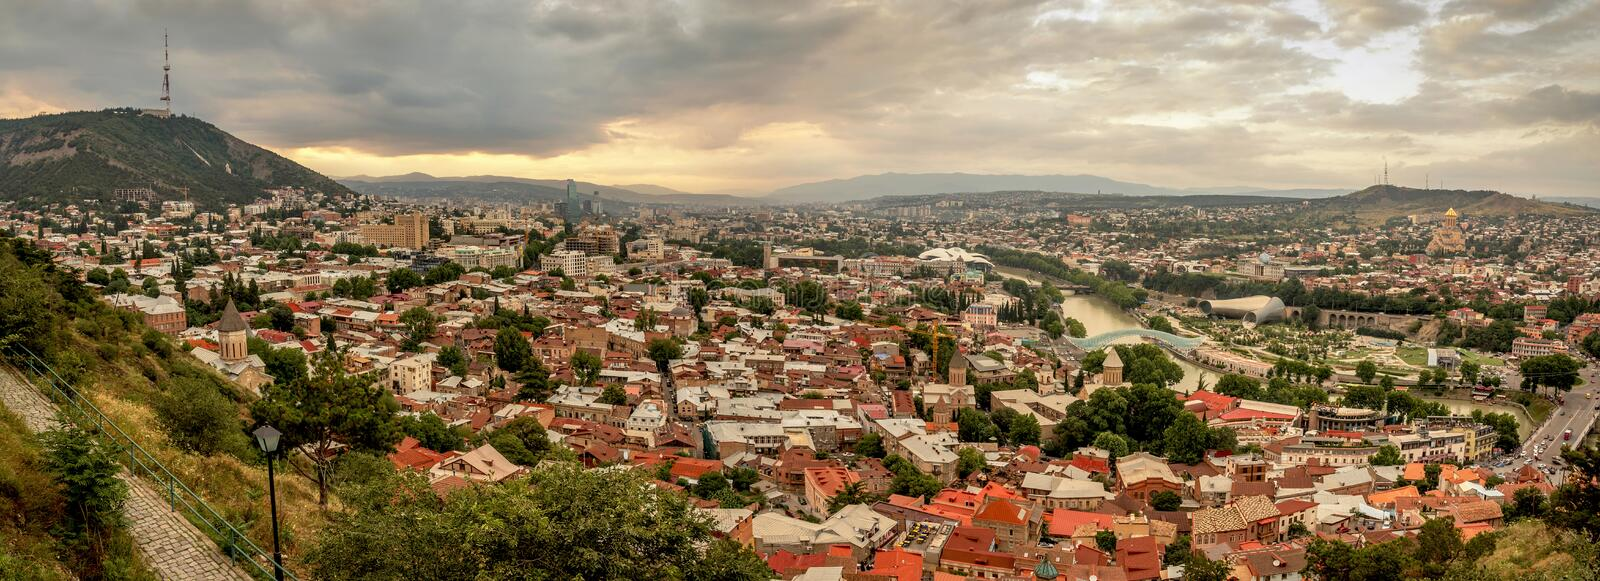 Panoramic view of Tbilisi, the capital of Georgia with old town royalty free stock photos